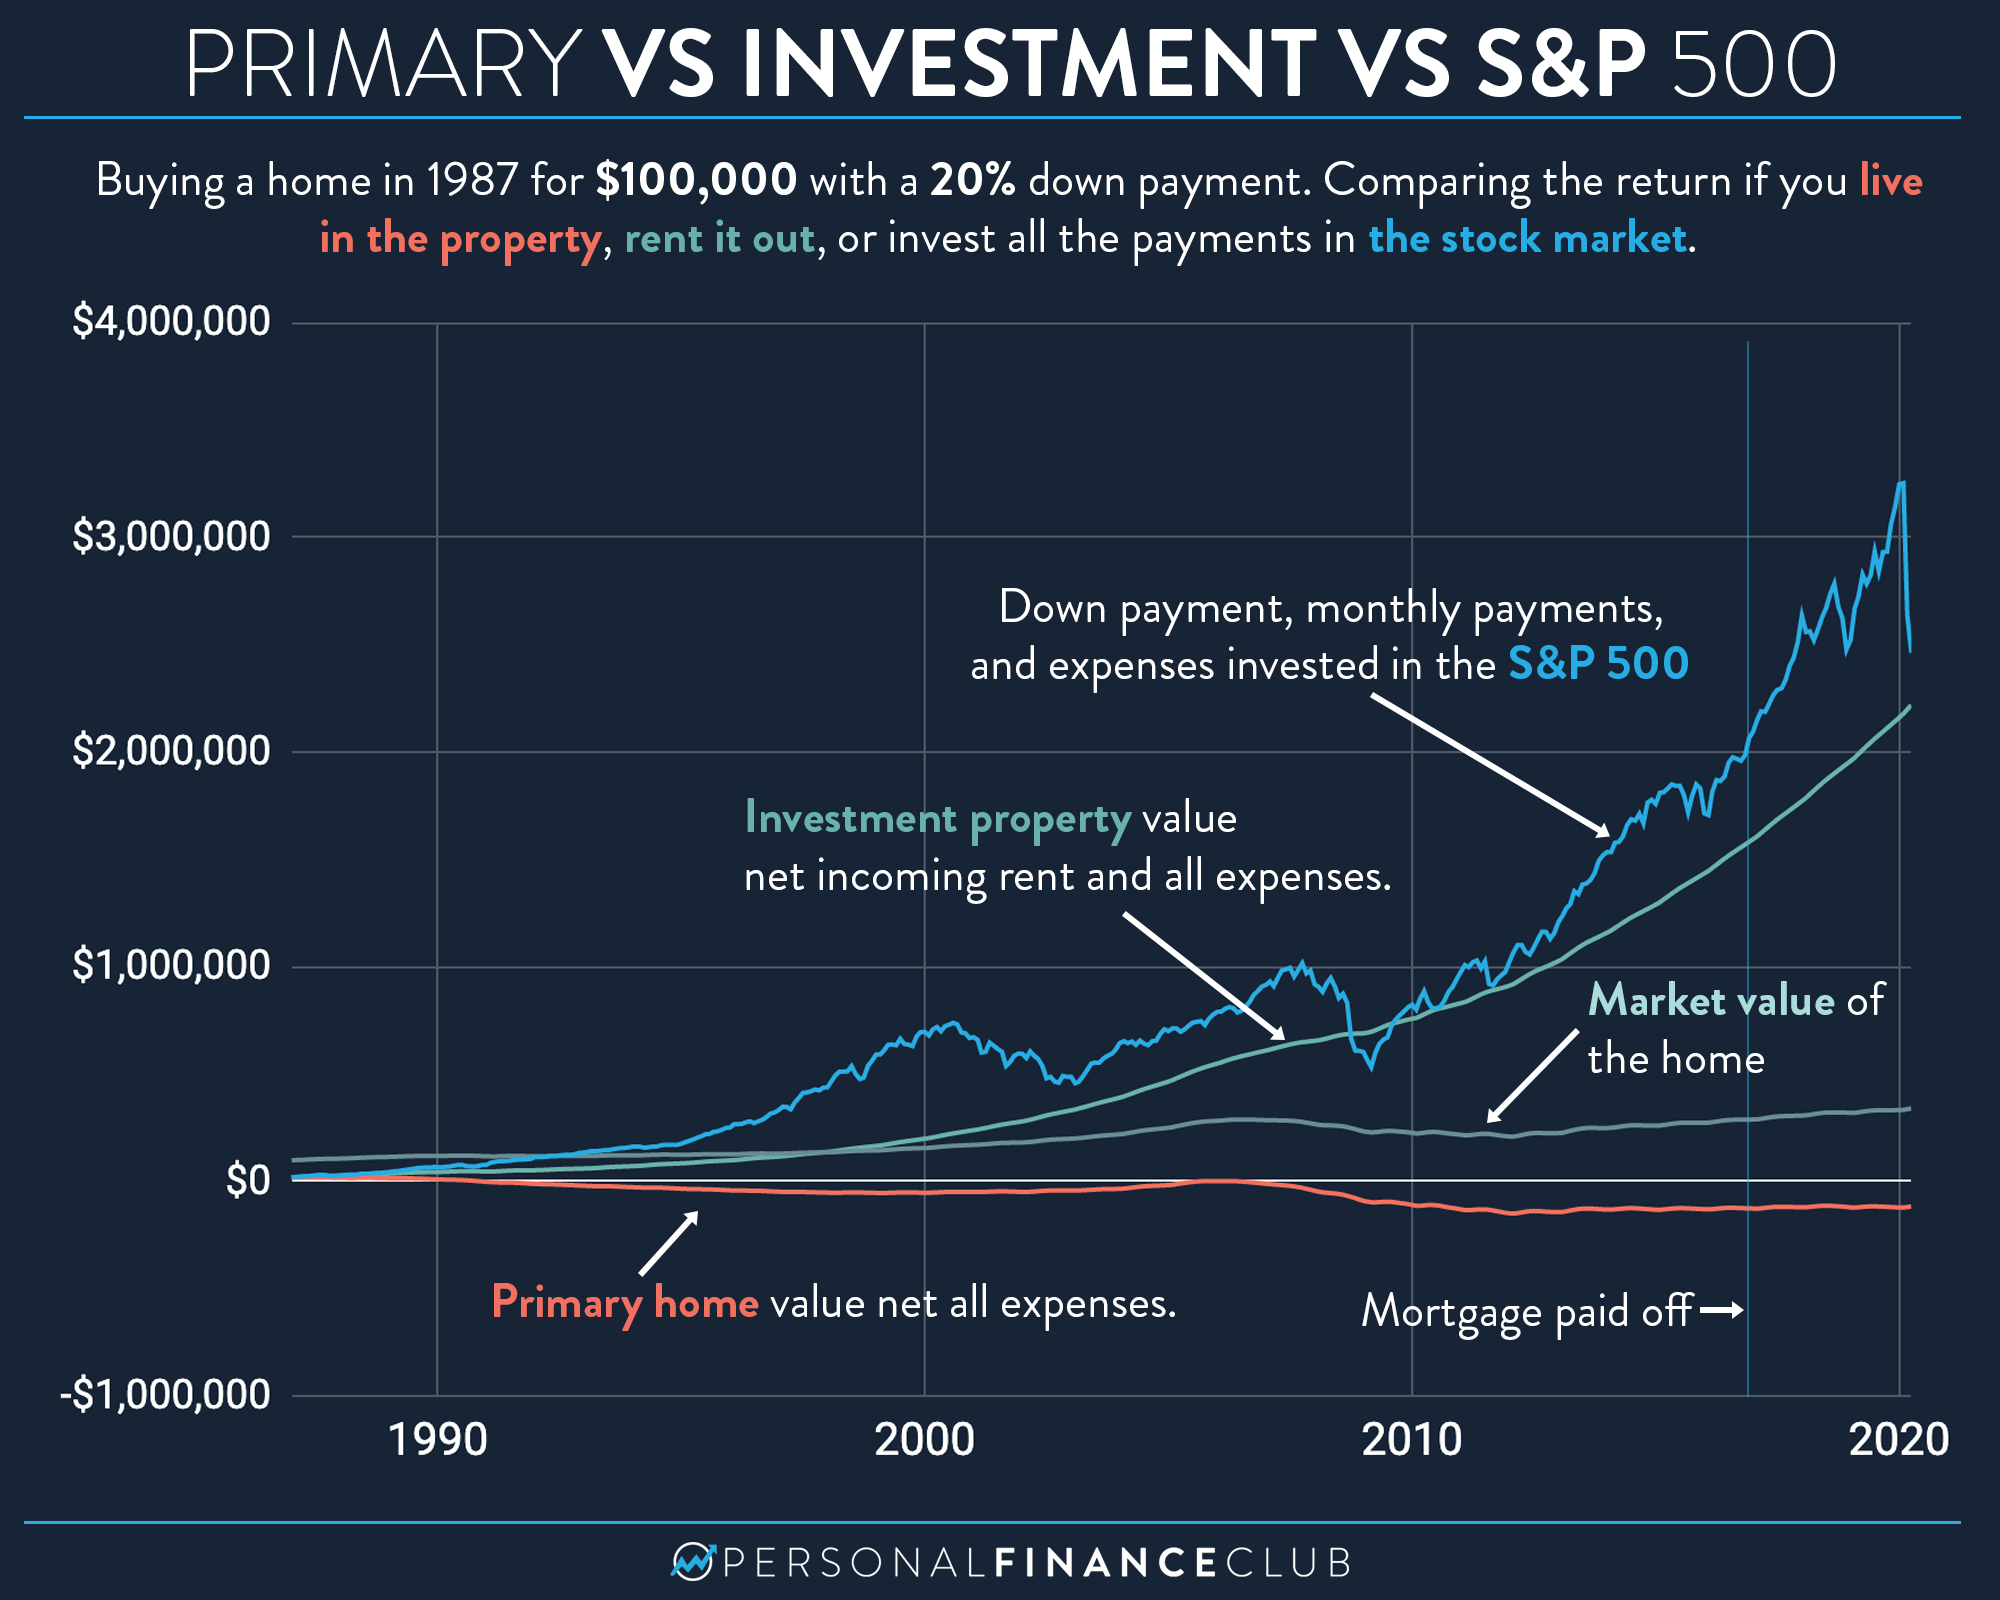 Primary home vs investment property vs S&P 500